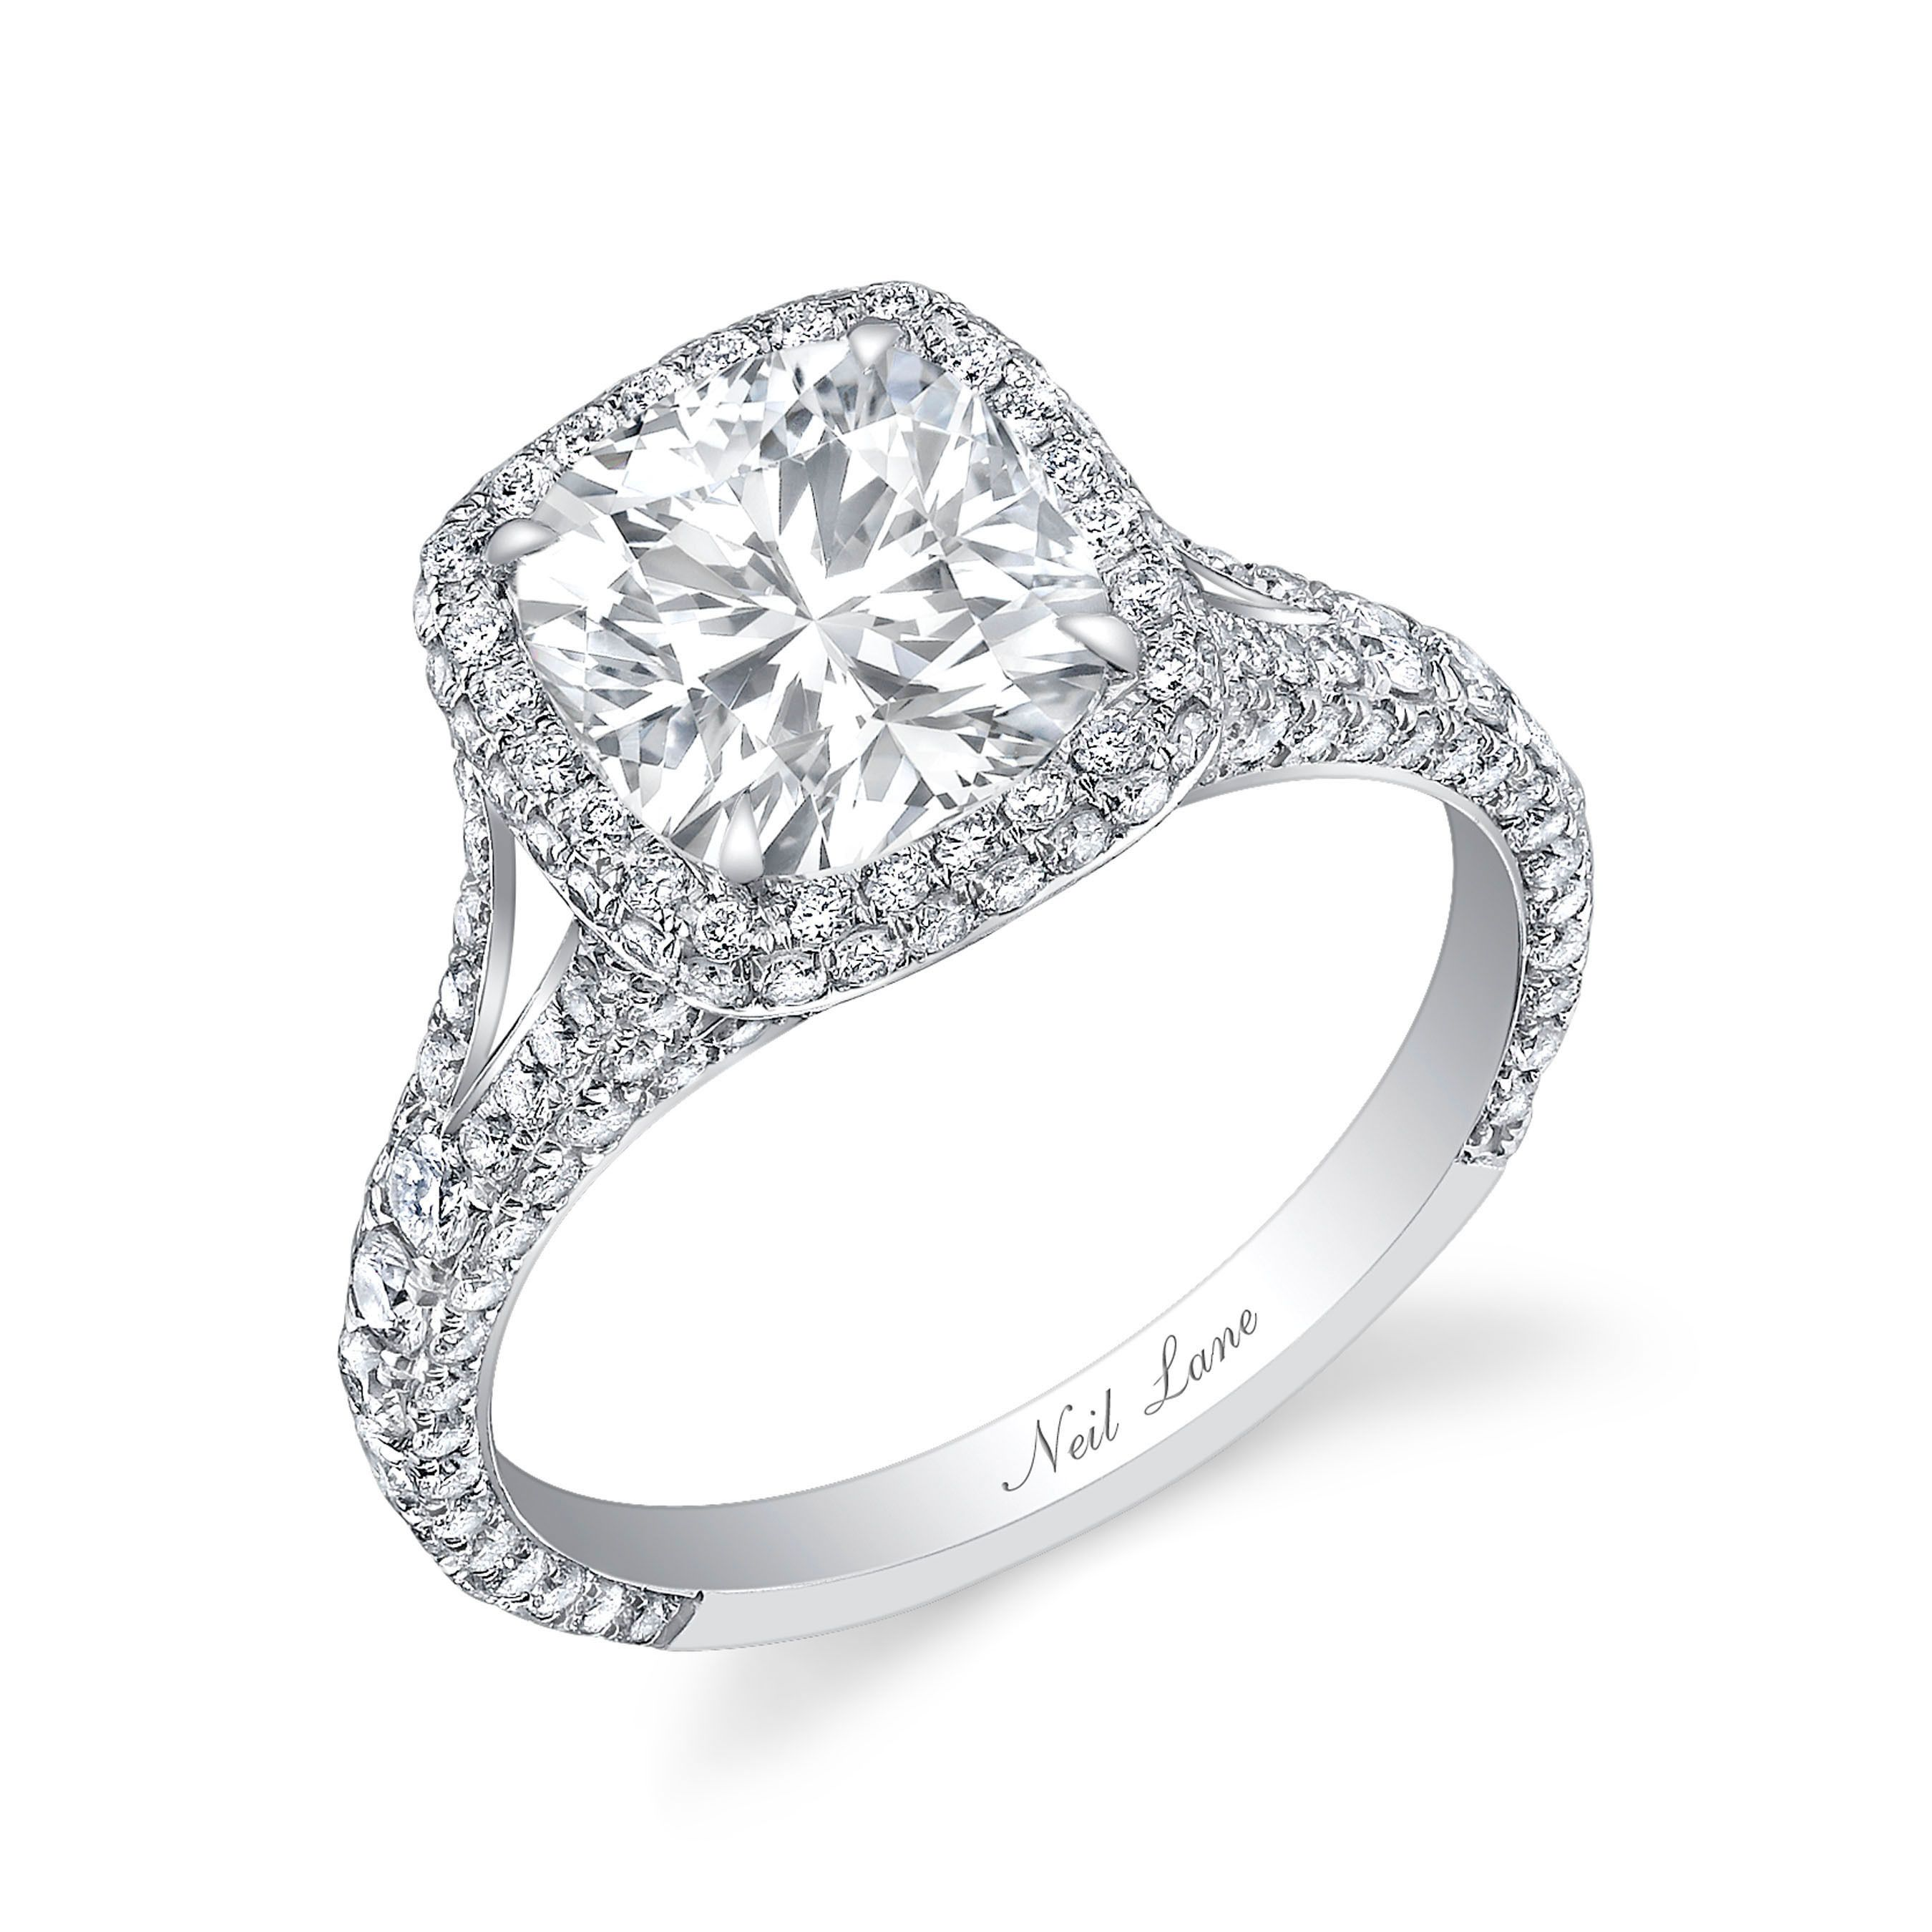 jewelers josephk ang wedding designers category rings product scott kay